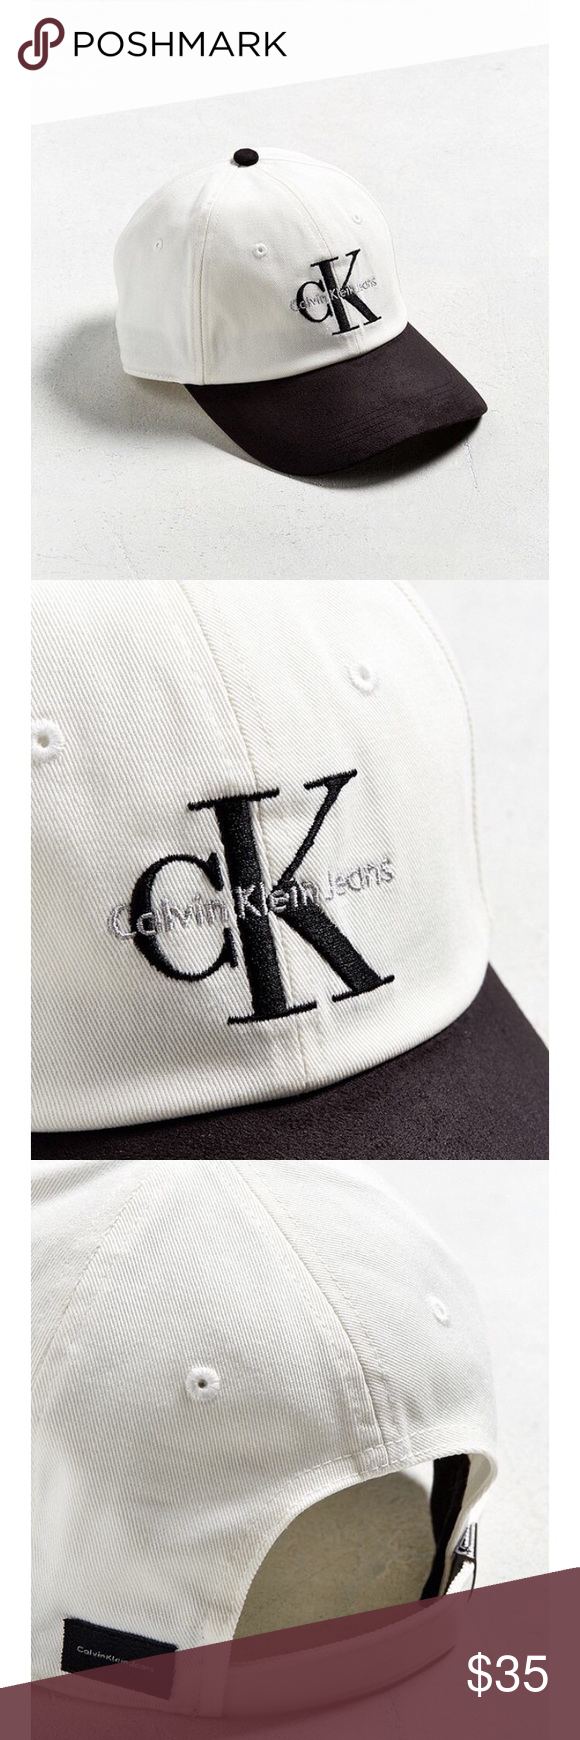 5d56a4c1710eef CK logo at front. Logo label at the back. Six-panel silhouette. Adjustable  strapback closure. BRAND NEW! With tag. Never used! Calvin Klein  Accessories Hats